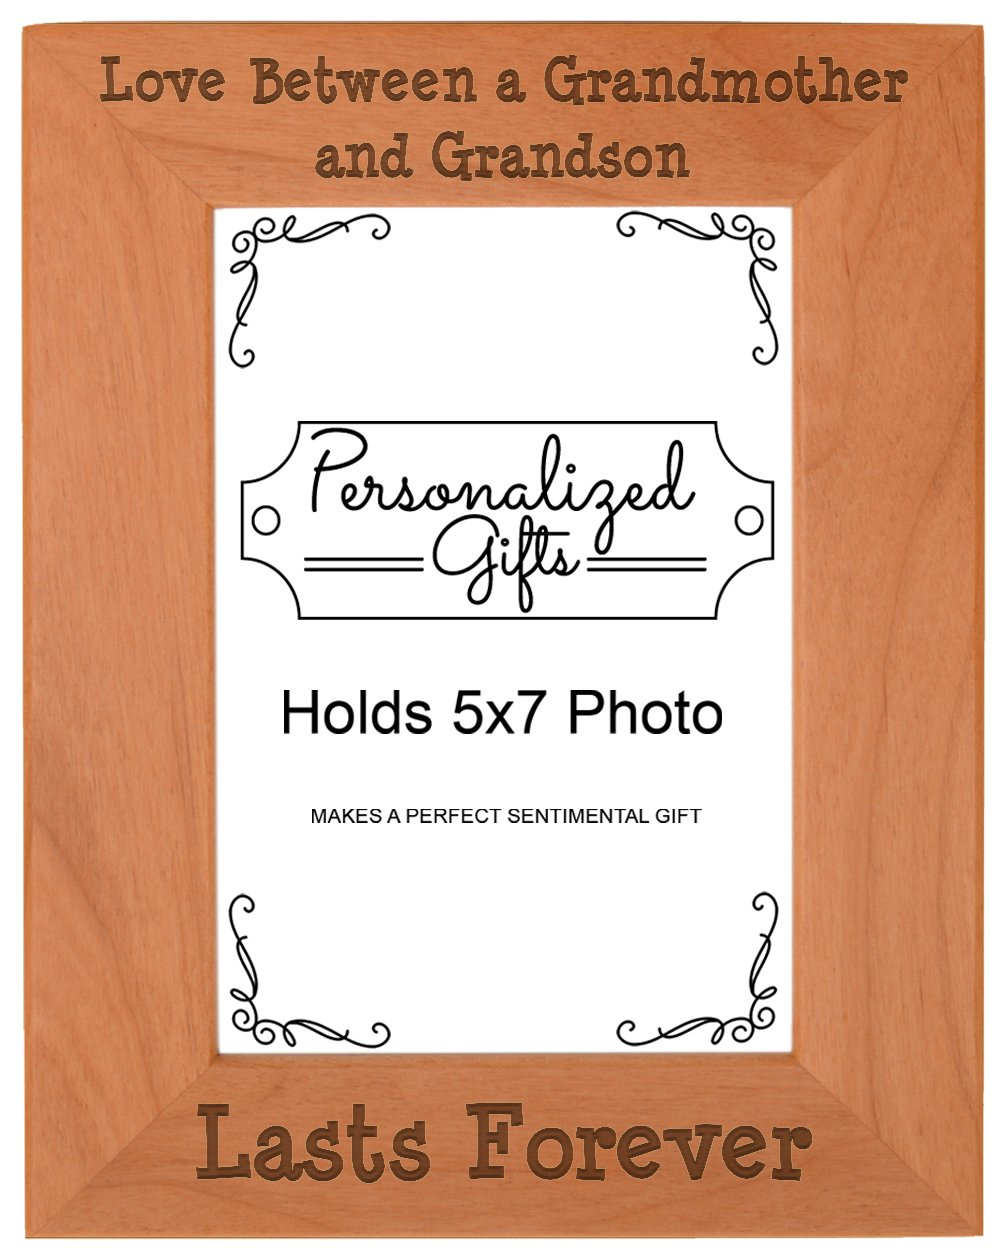 First Time Grandma Gifts Love Between A Grandmother Grandson Lasts Forever Birthday Natural Wood Engraved 5x7 Portrait Picture Frame